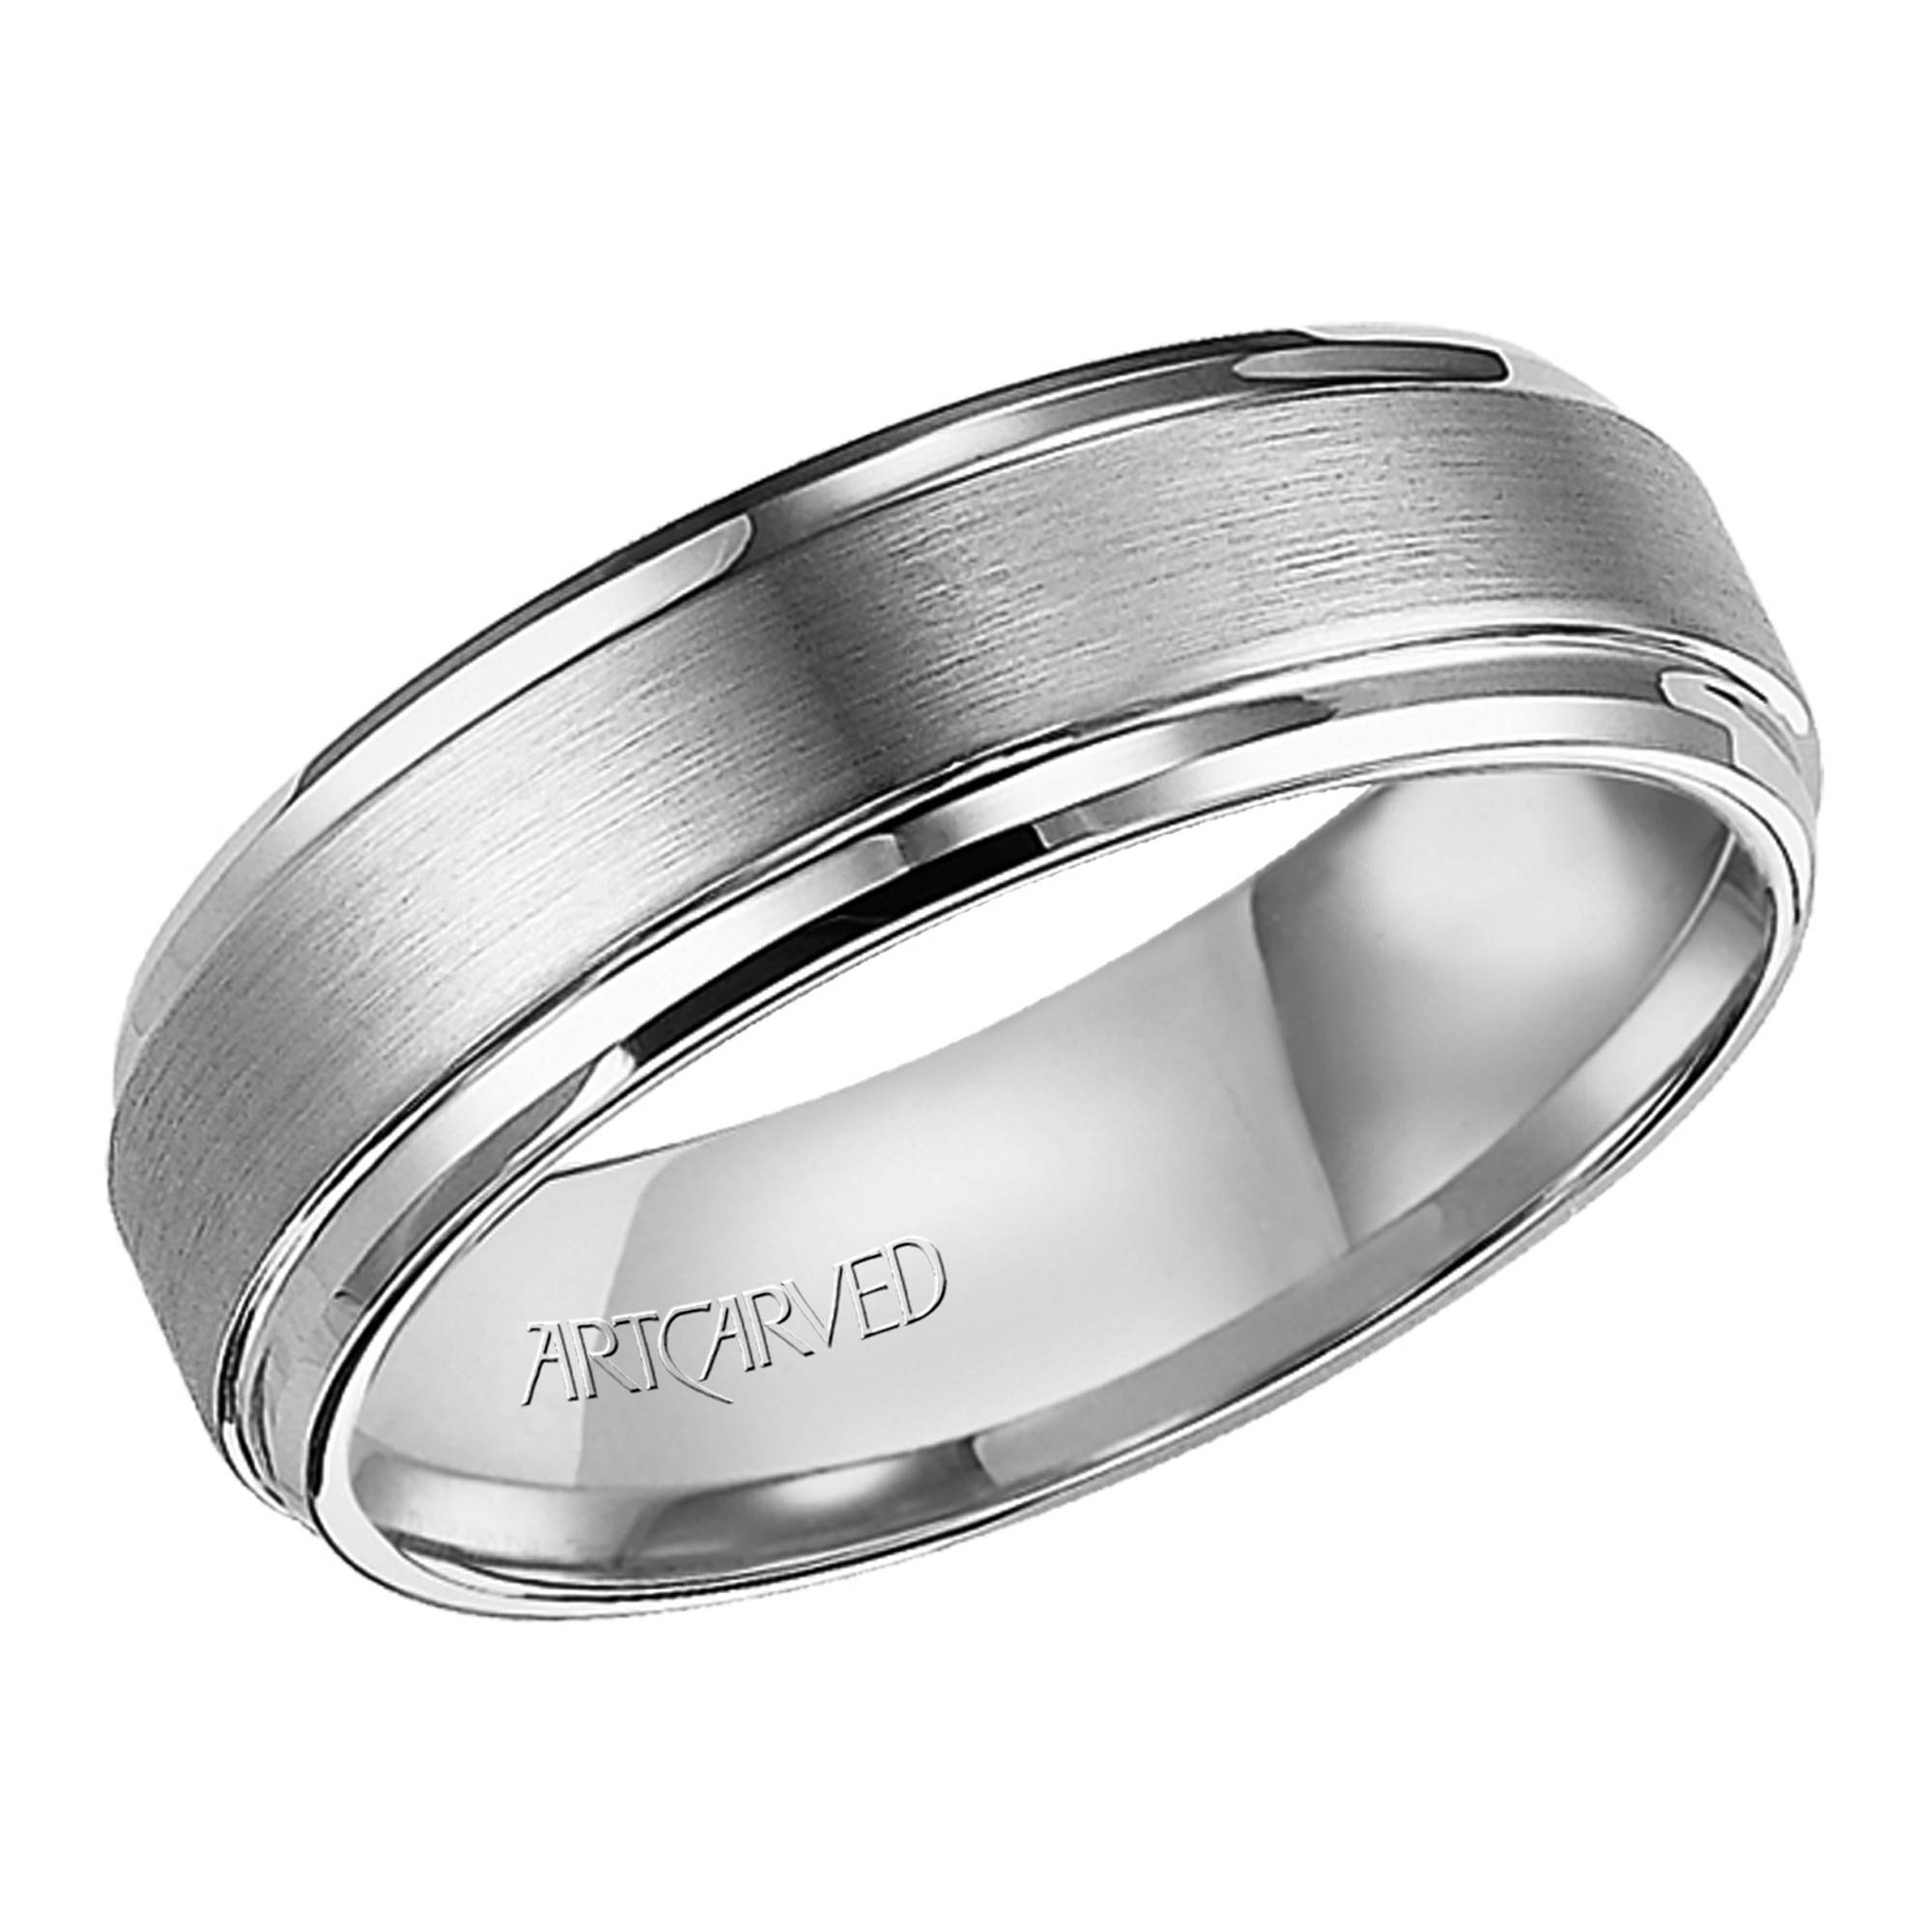 Artcarved Mens Exquisite Carved Wedding Band In Tungsten Carbide (7Mm) Throughout Art Carved Wedding Bands (View 7 of 15)